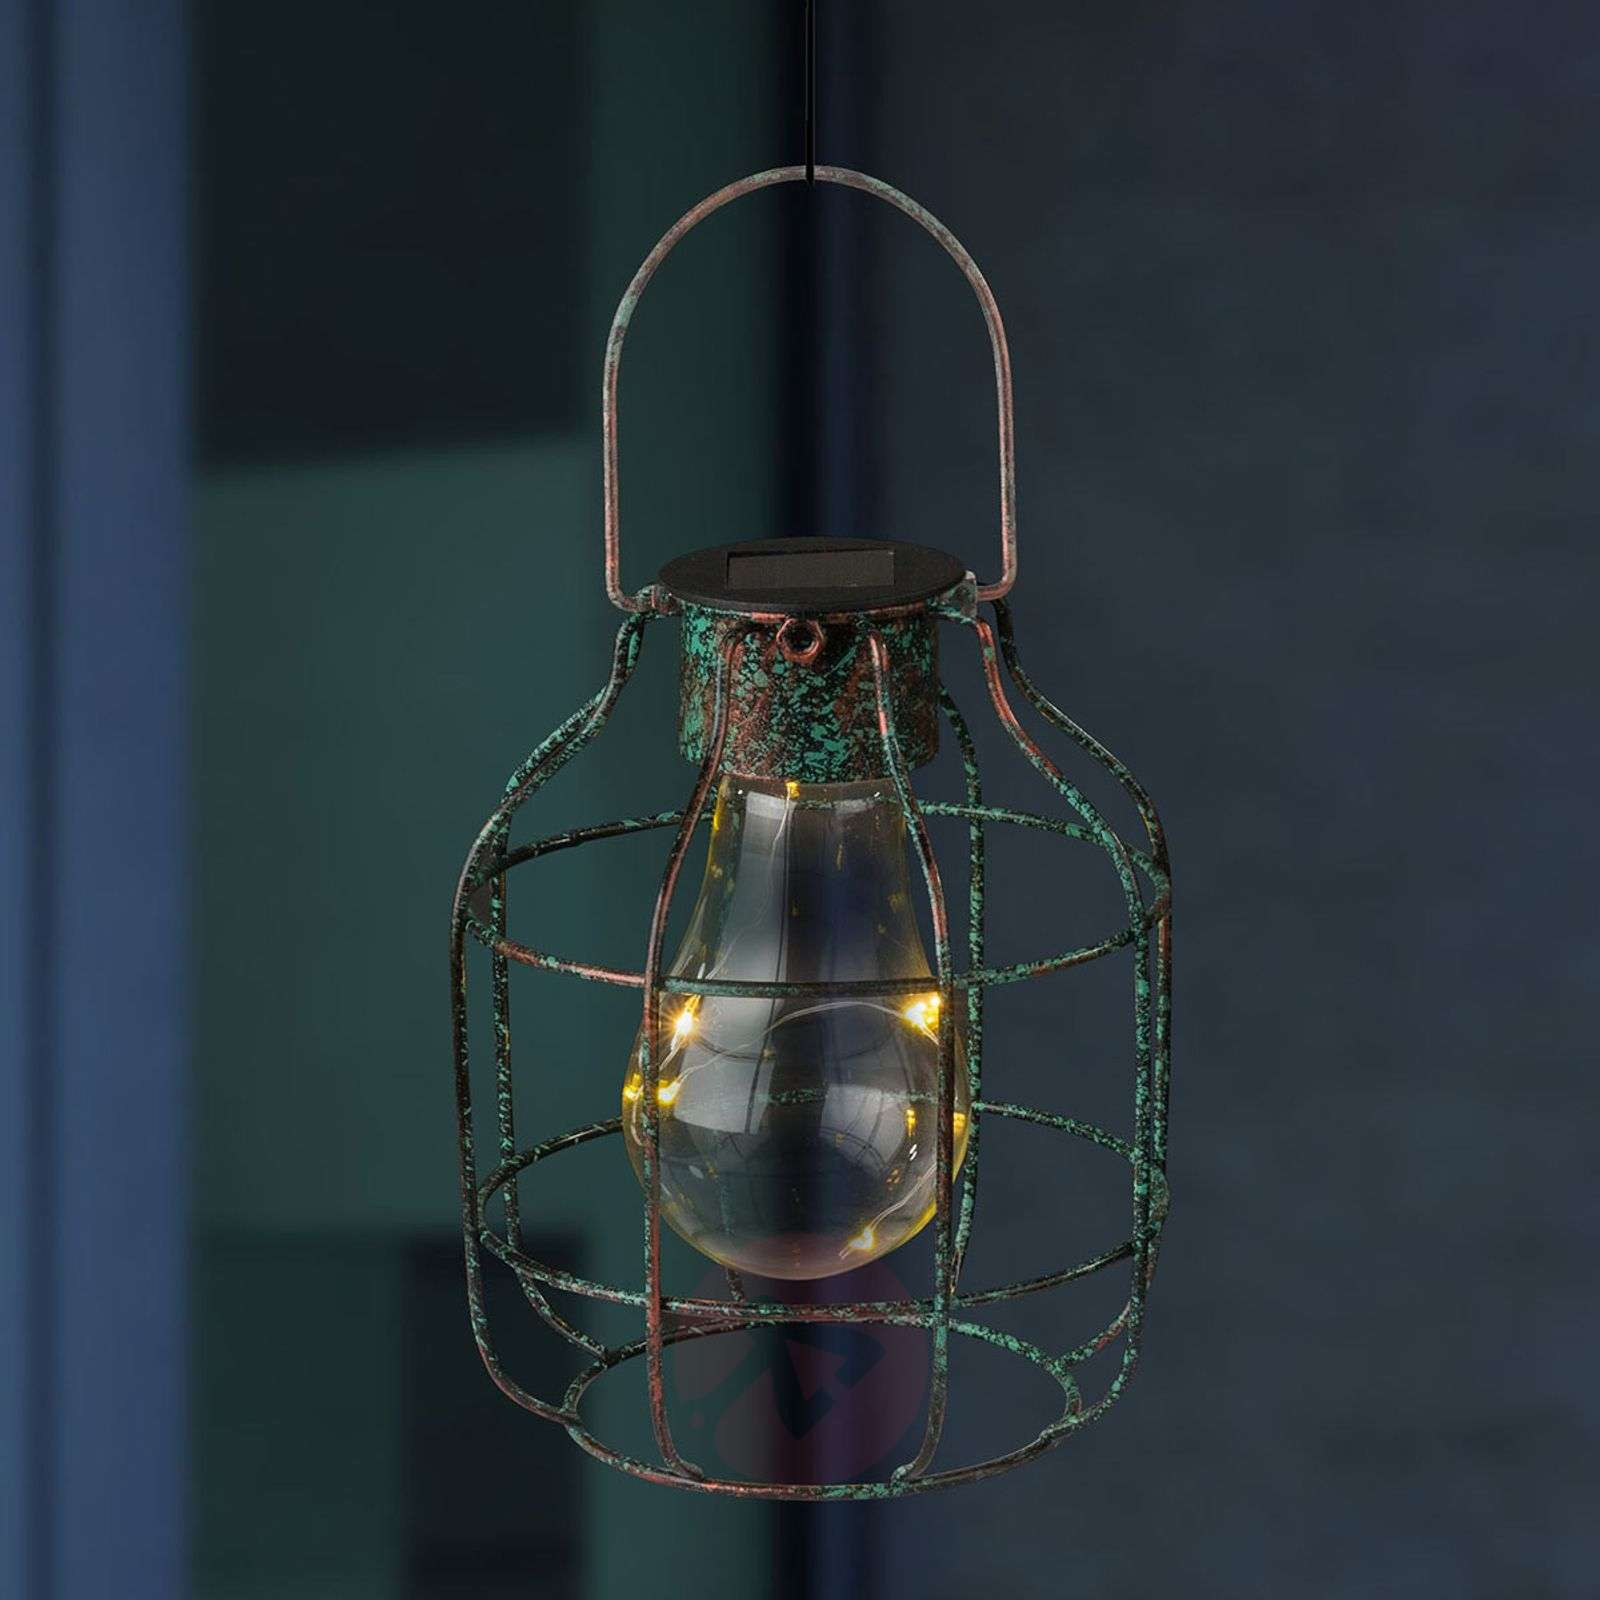 Decorative LED solar light Cage in a vintage look-4015028-01